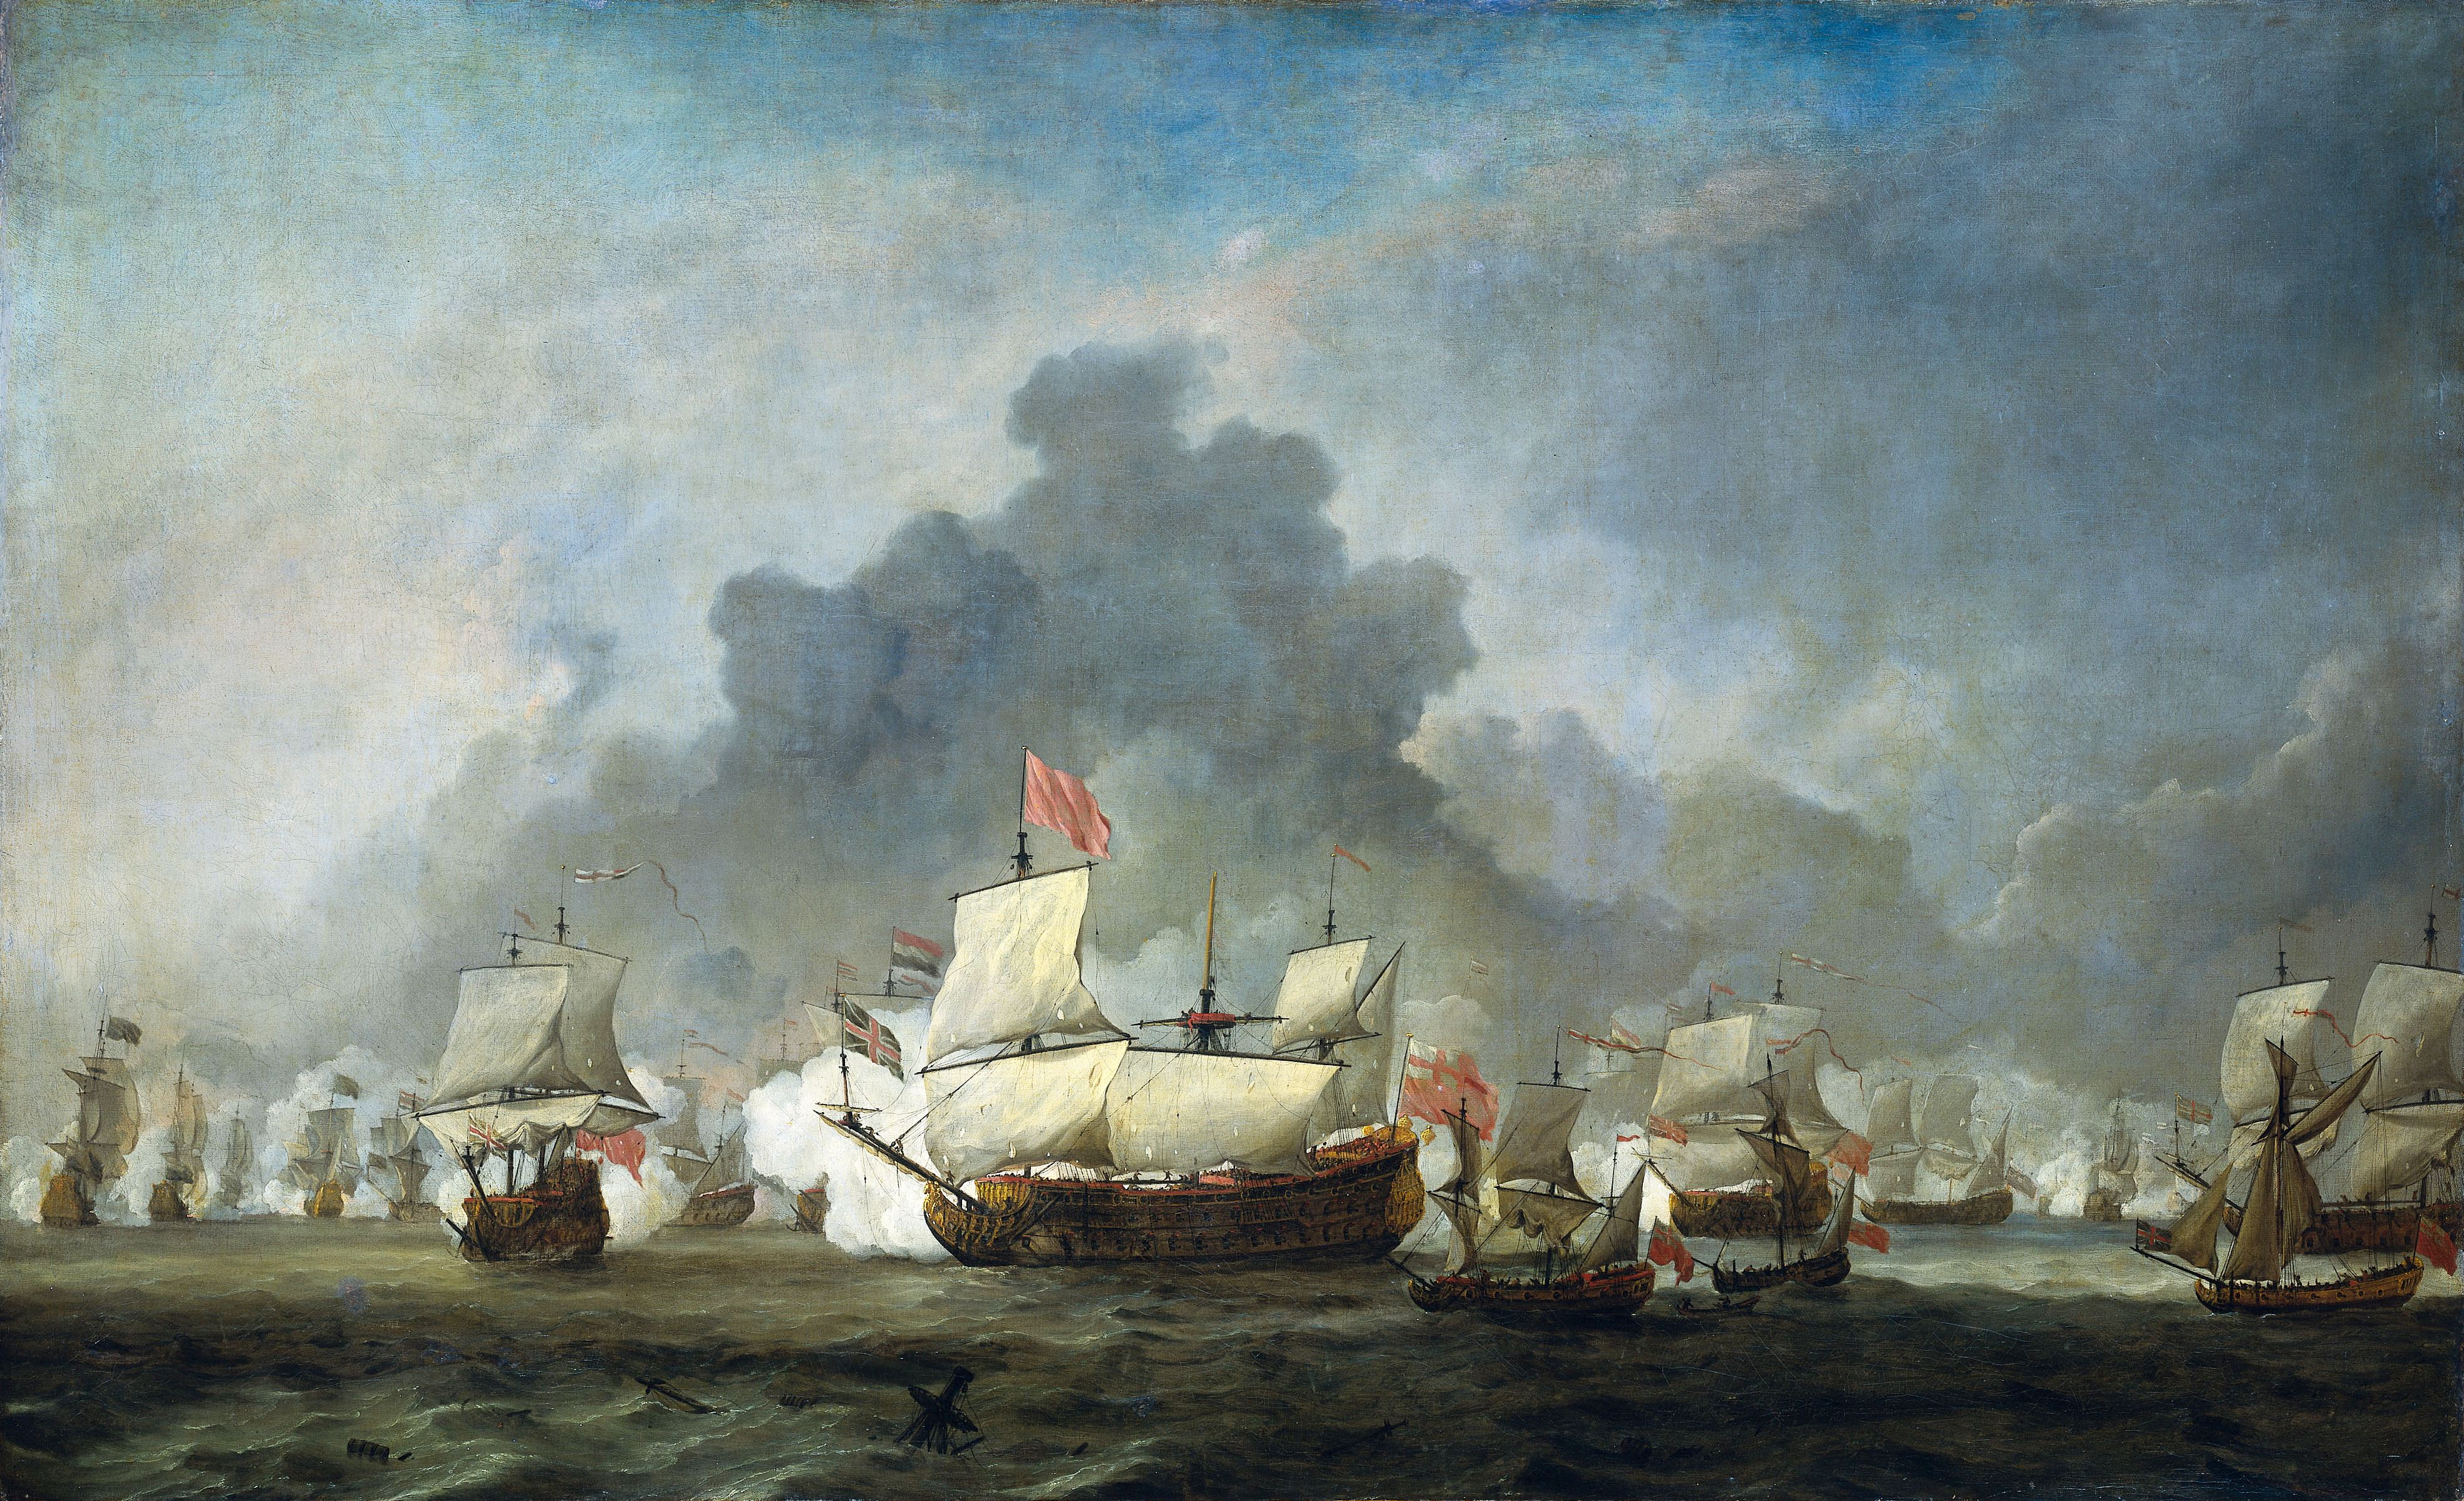 File:Battle of Solebay june 7 1672 - De Ruyter against the Duke of York